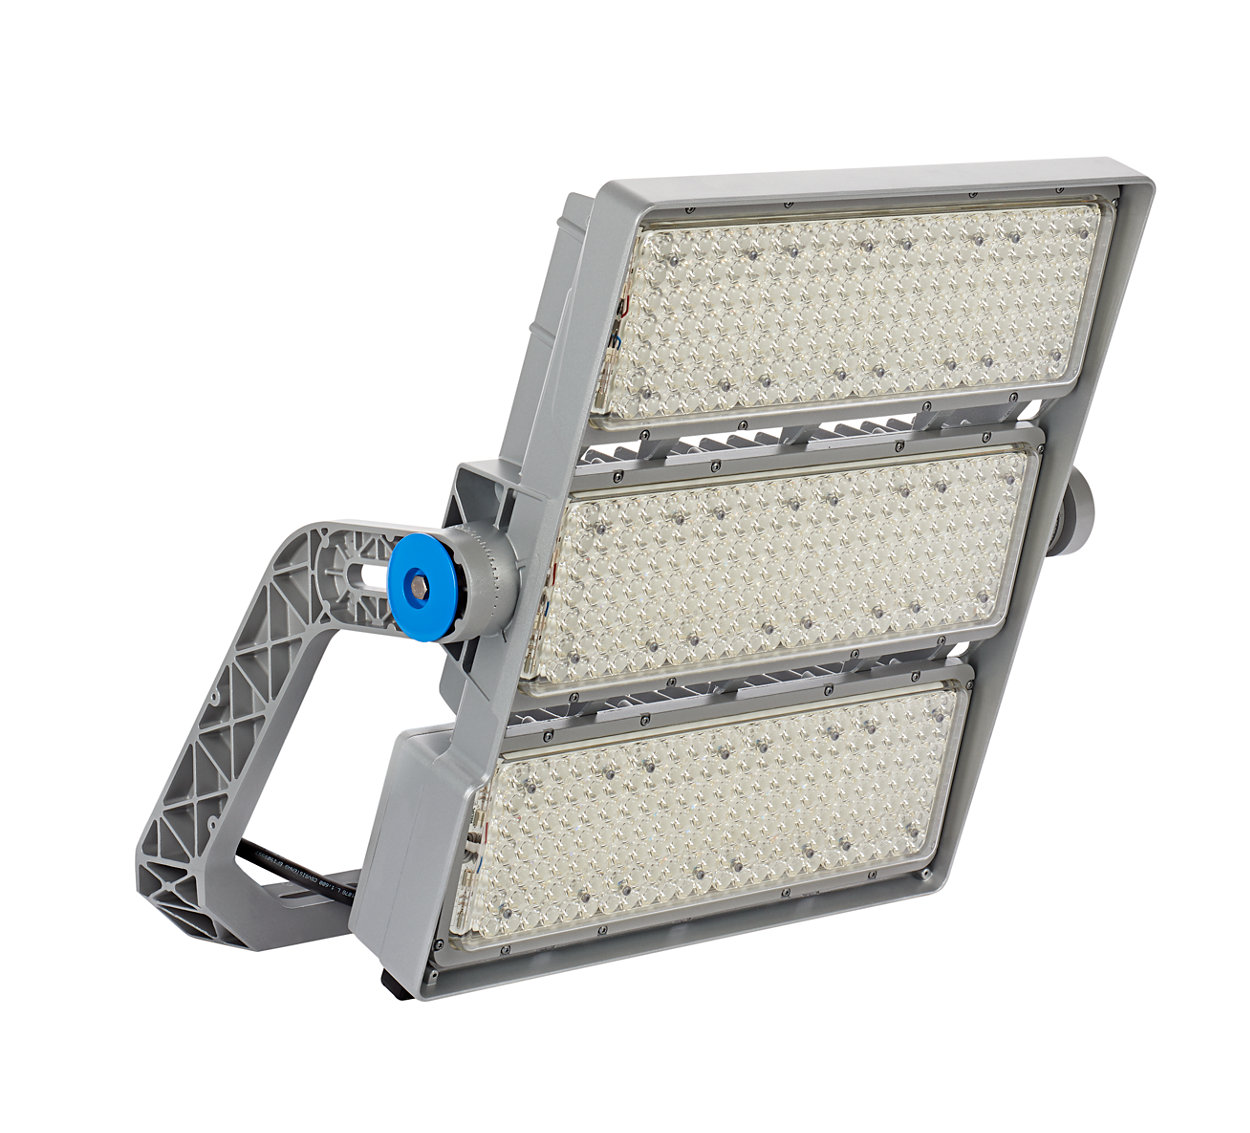 ArenaVision LED gen3.5 – Revolutionising thepitch-lighting experience